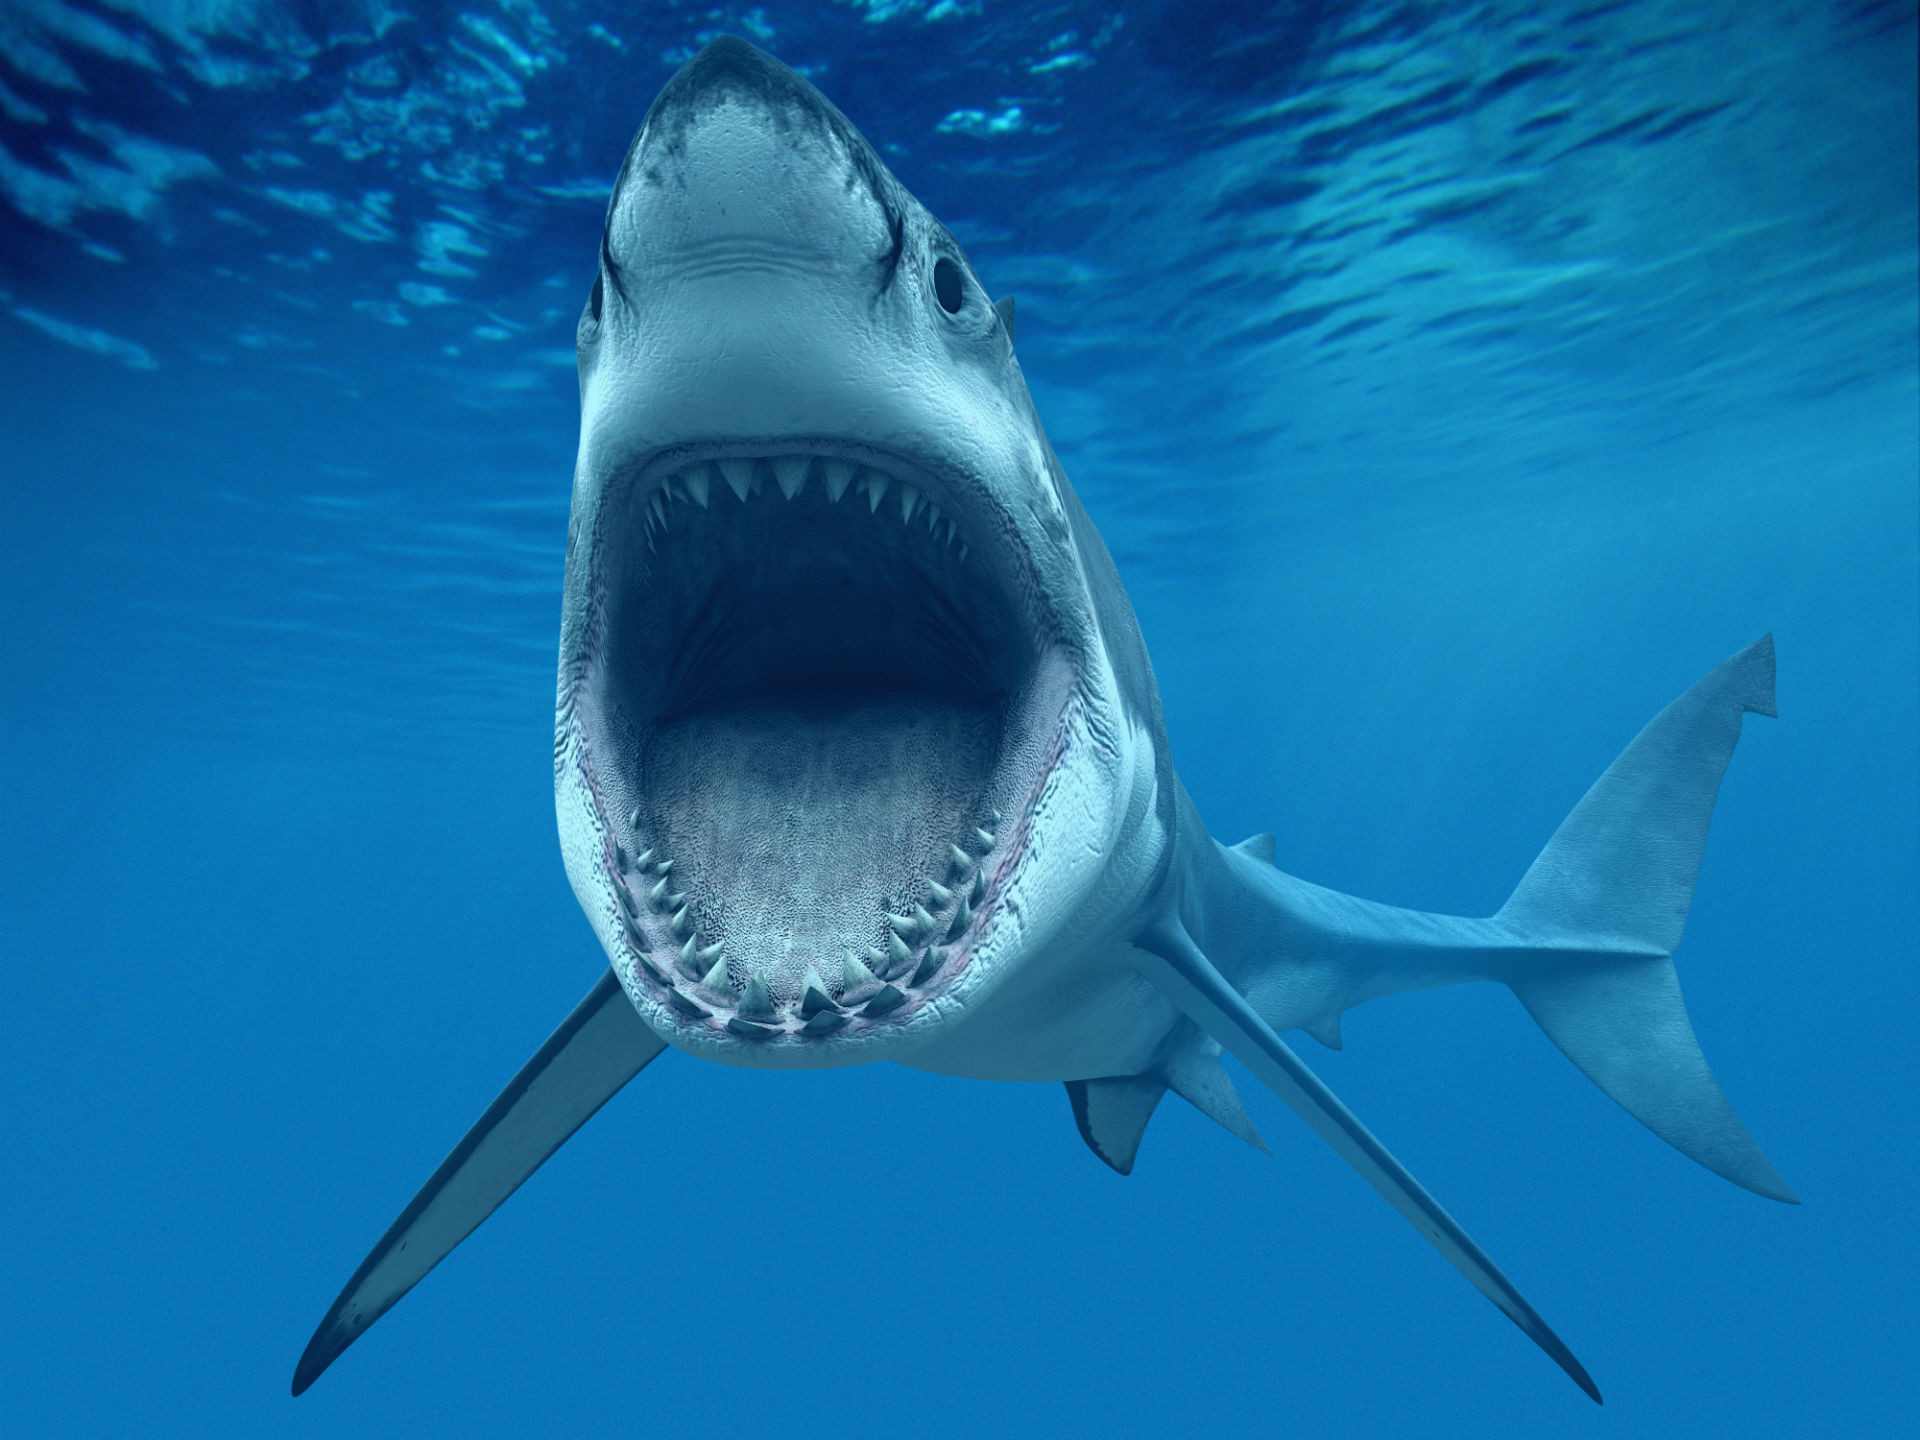 1920x1440 Shark Fish Great WhiteTeeth Underwater Blue Ocean CG wallpaper .